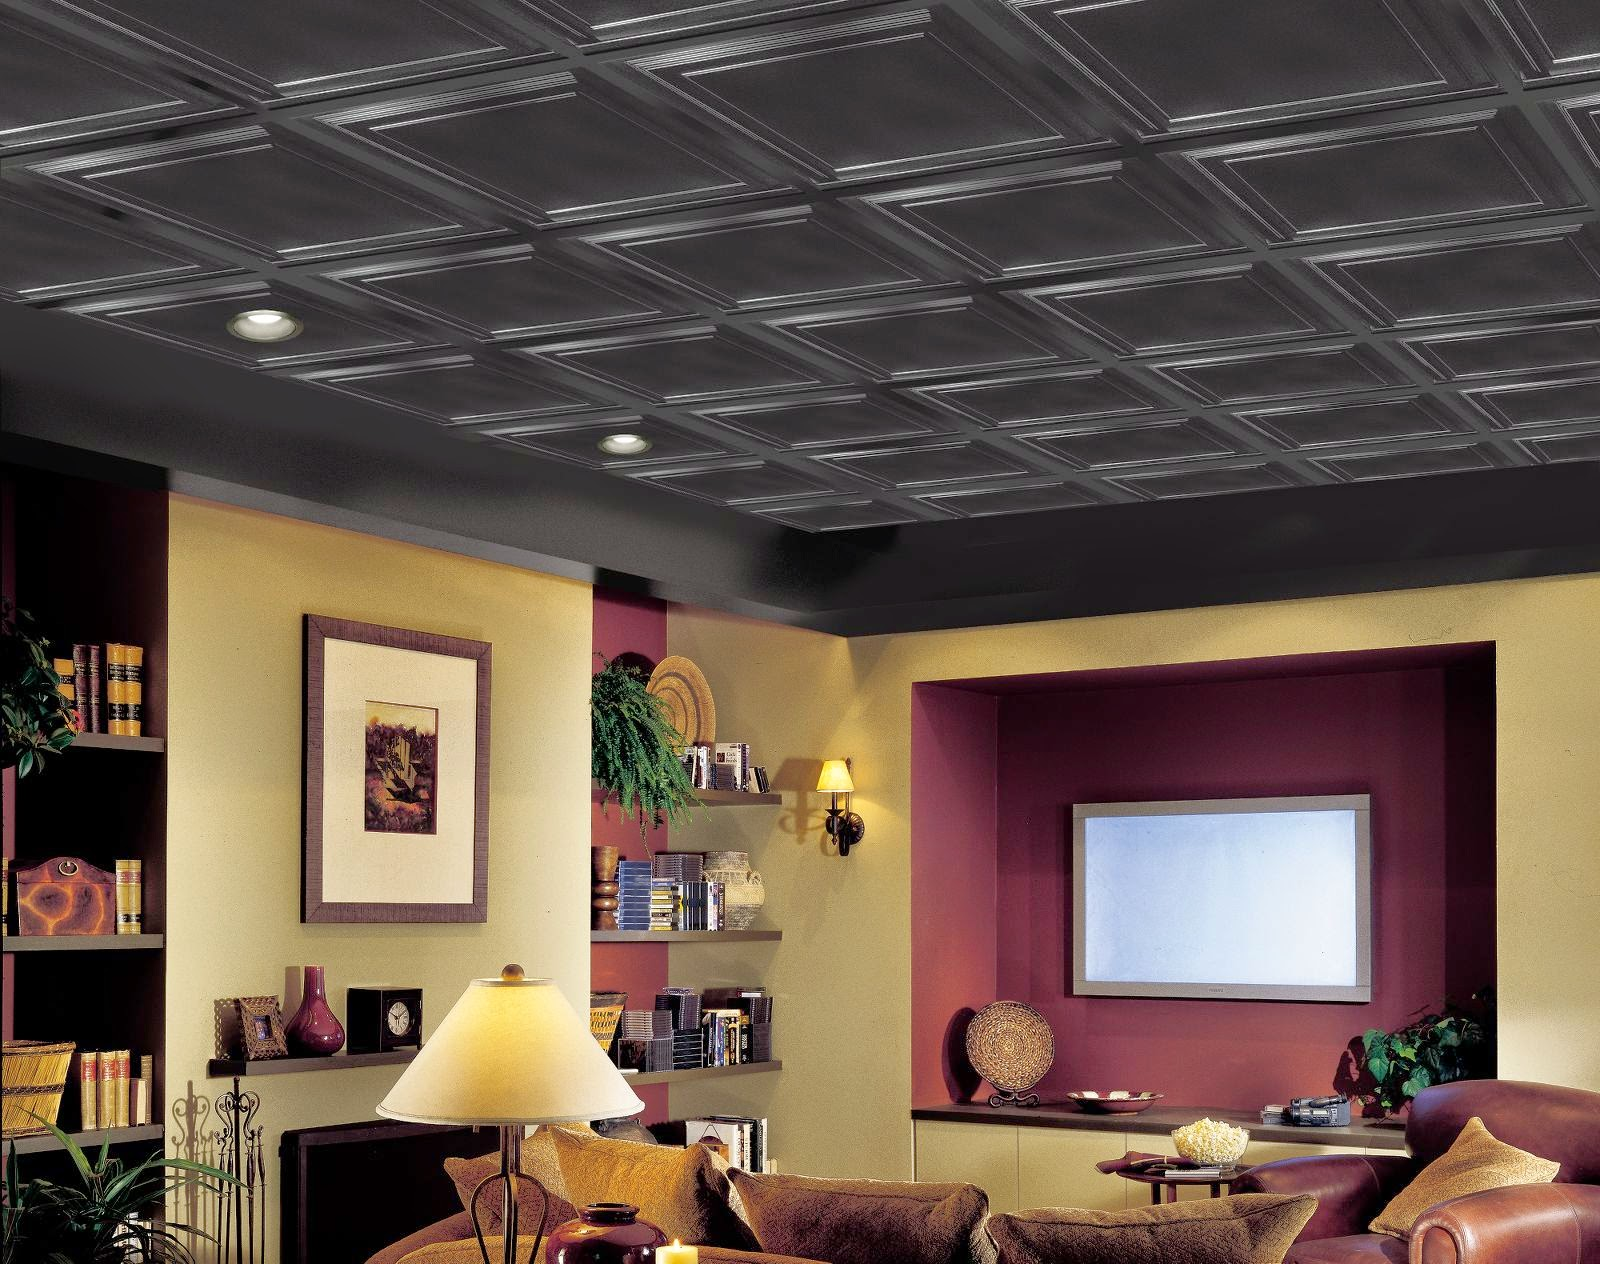 Basement Ceilings Then And Now The Interior Frugalista - Black ceiling basement